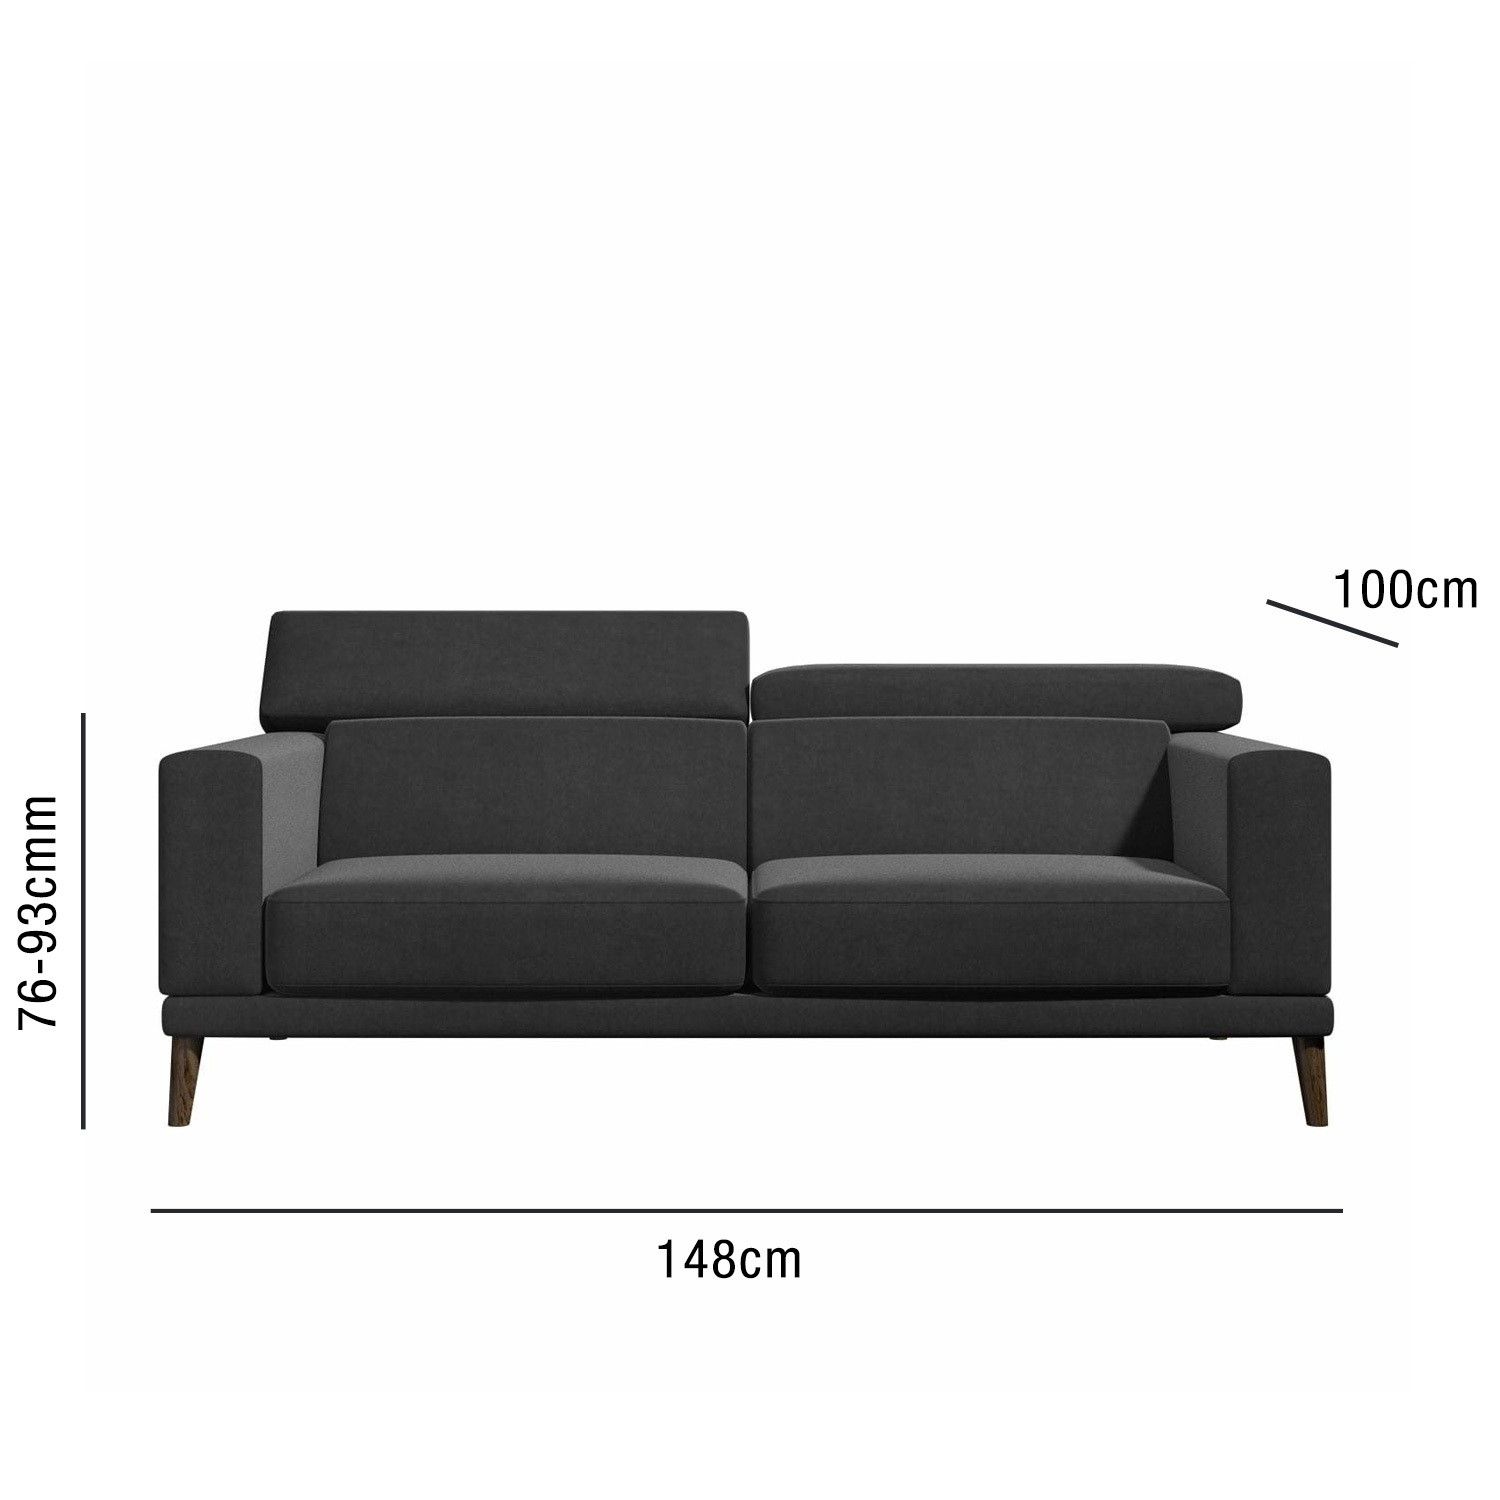 Stupendous Lamarr Sofa In Dark Grey With Adjustable Headrests Seats 2 Pdpeps Interior Chair Design Pdpepsorg